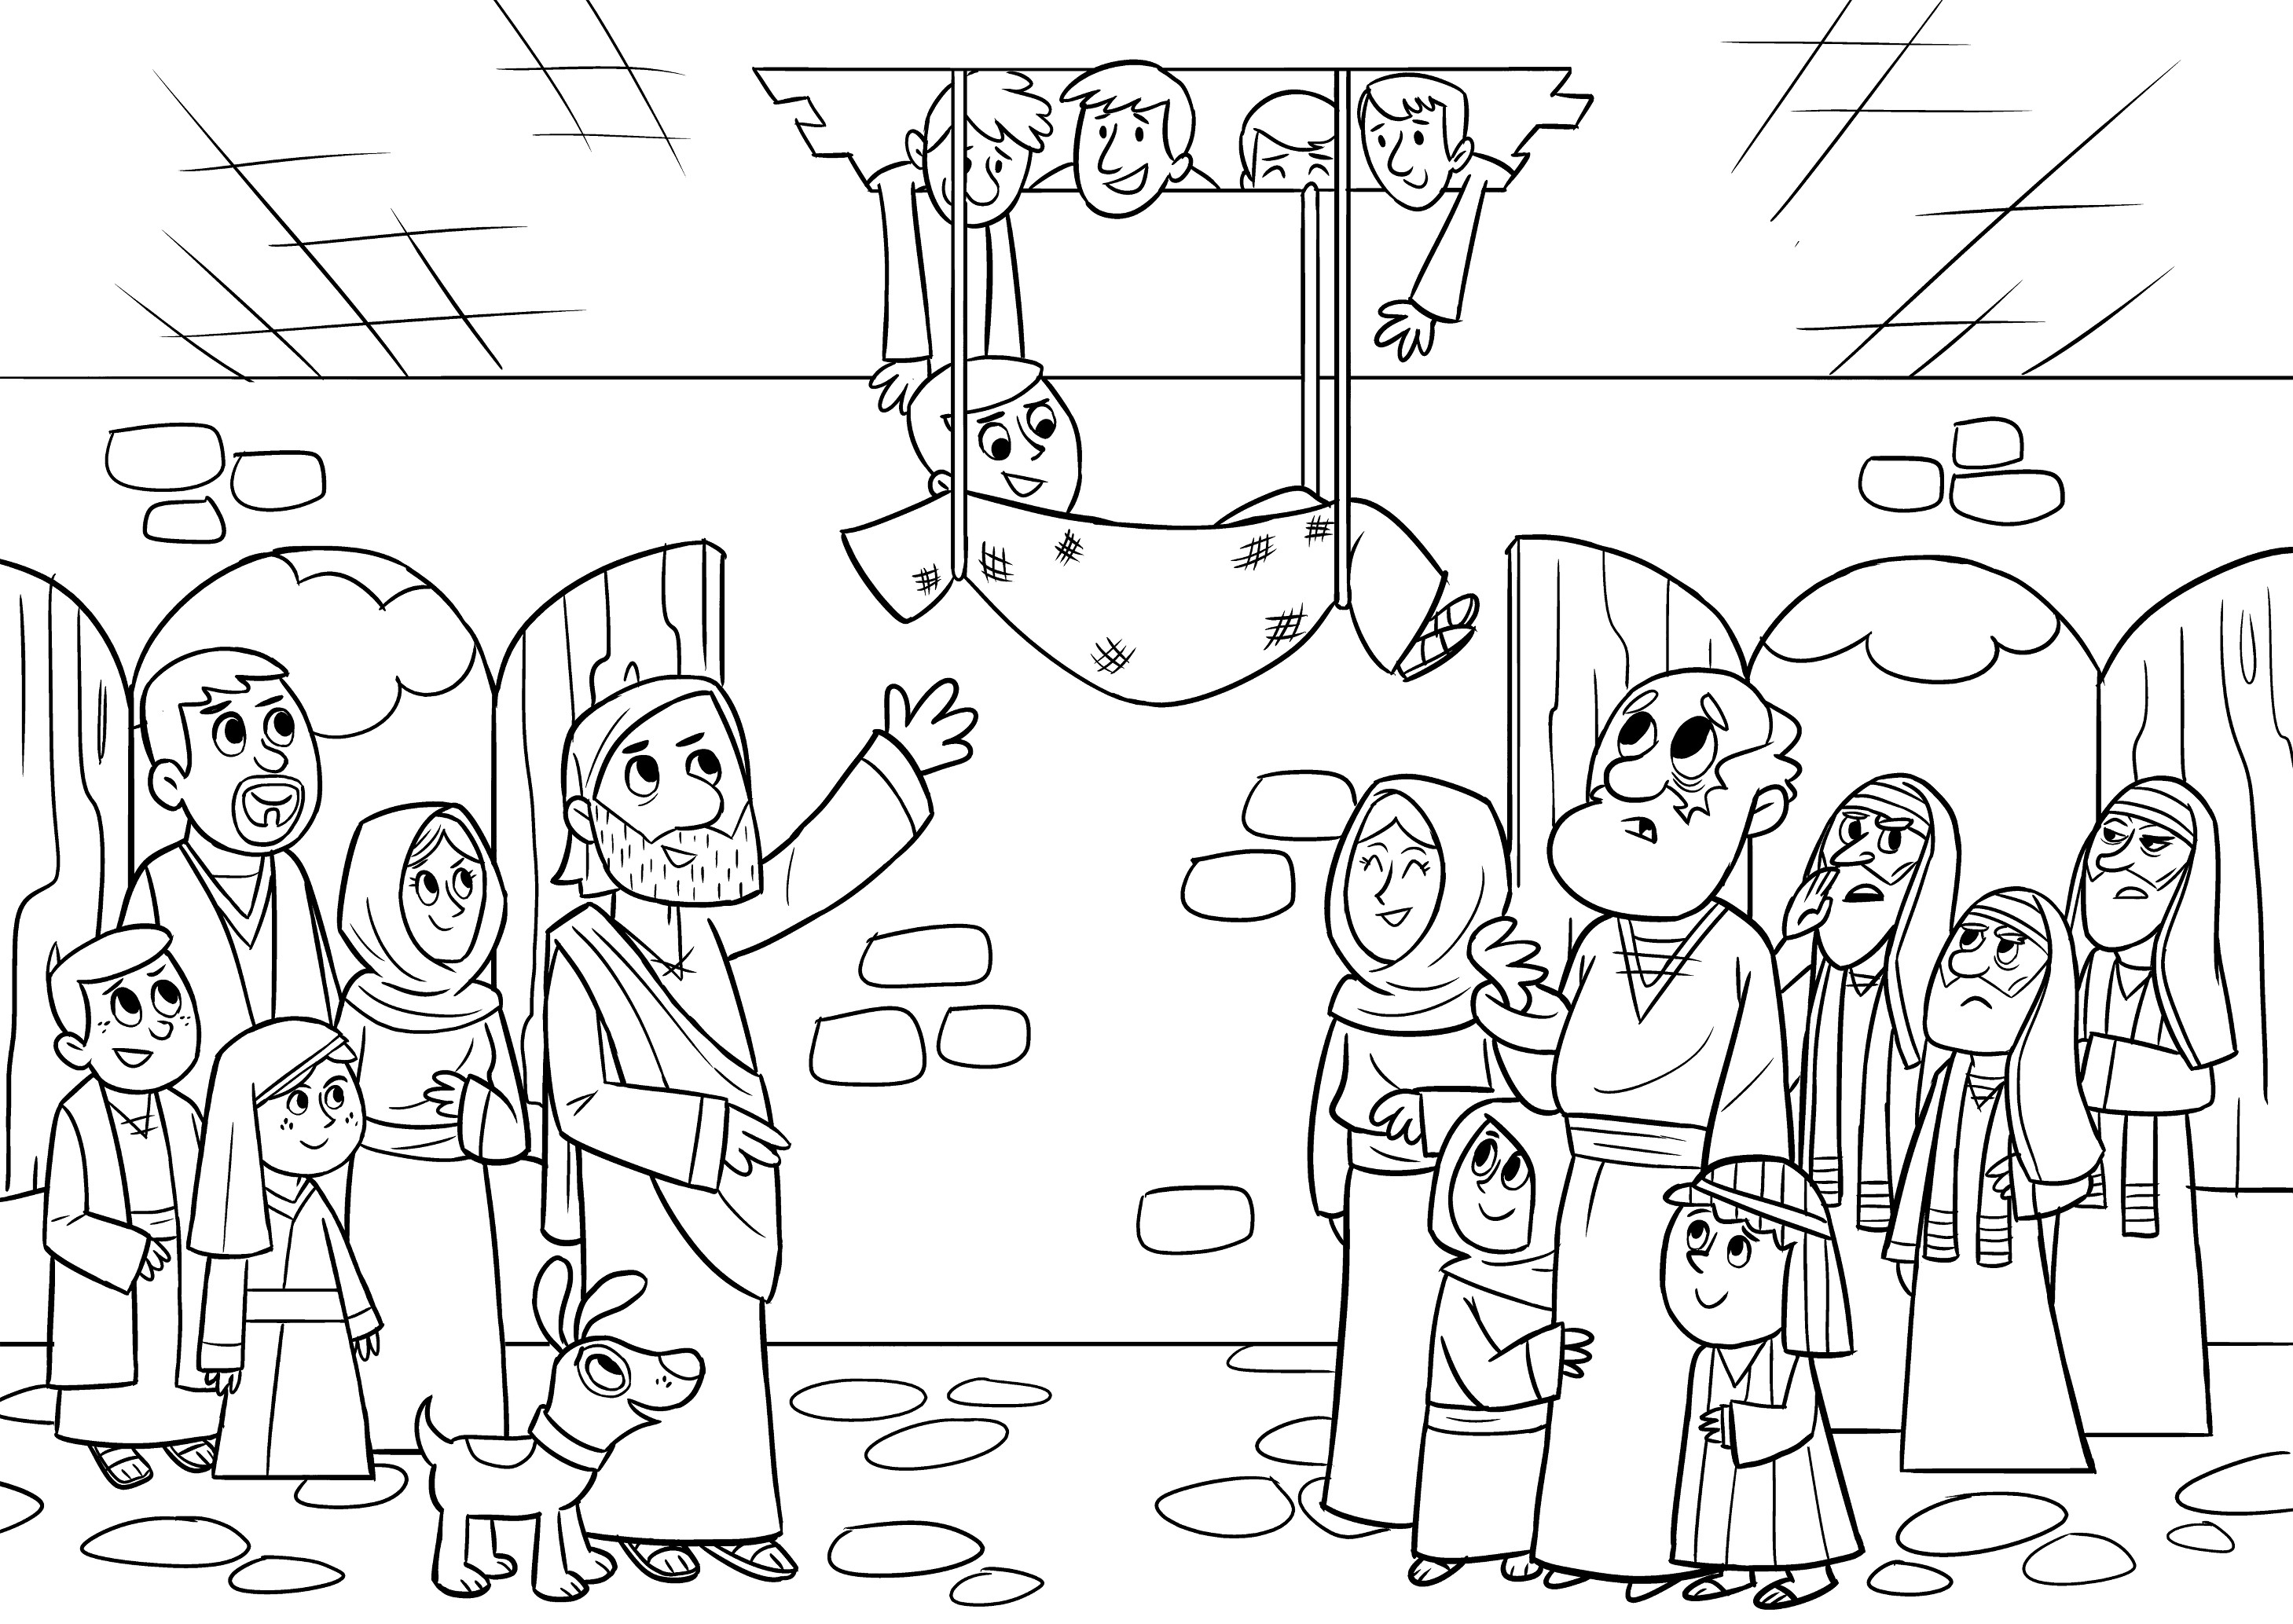 jesus heals a paralyzed man coloring page 1000 images about jesus heals the paralytic on pinterest coloring man page heals a paralyzed jesus